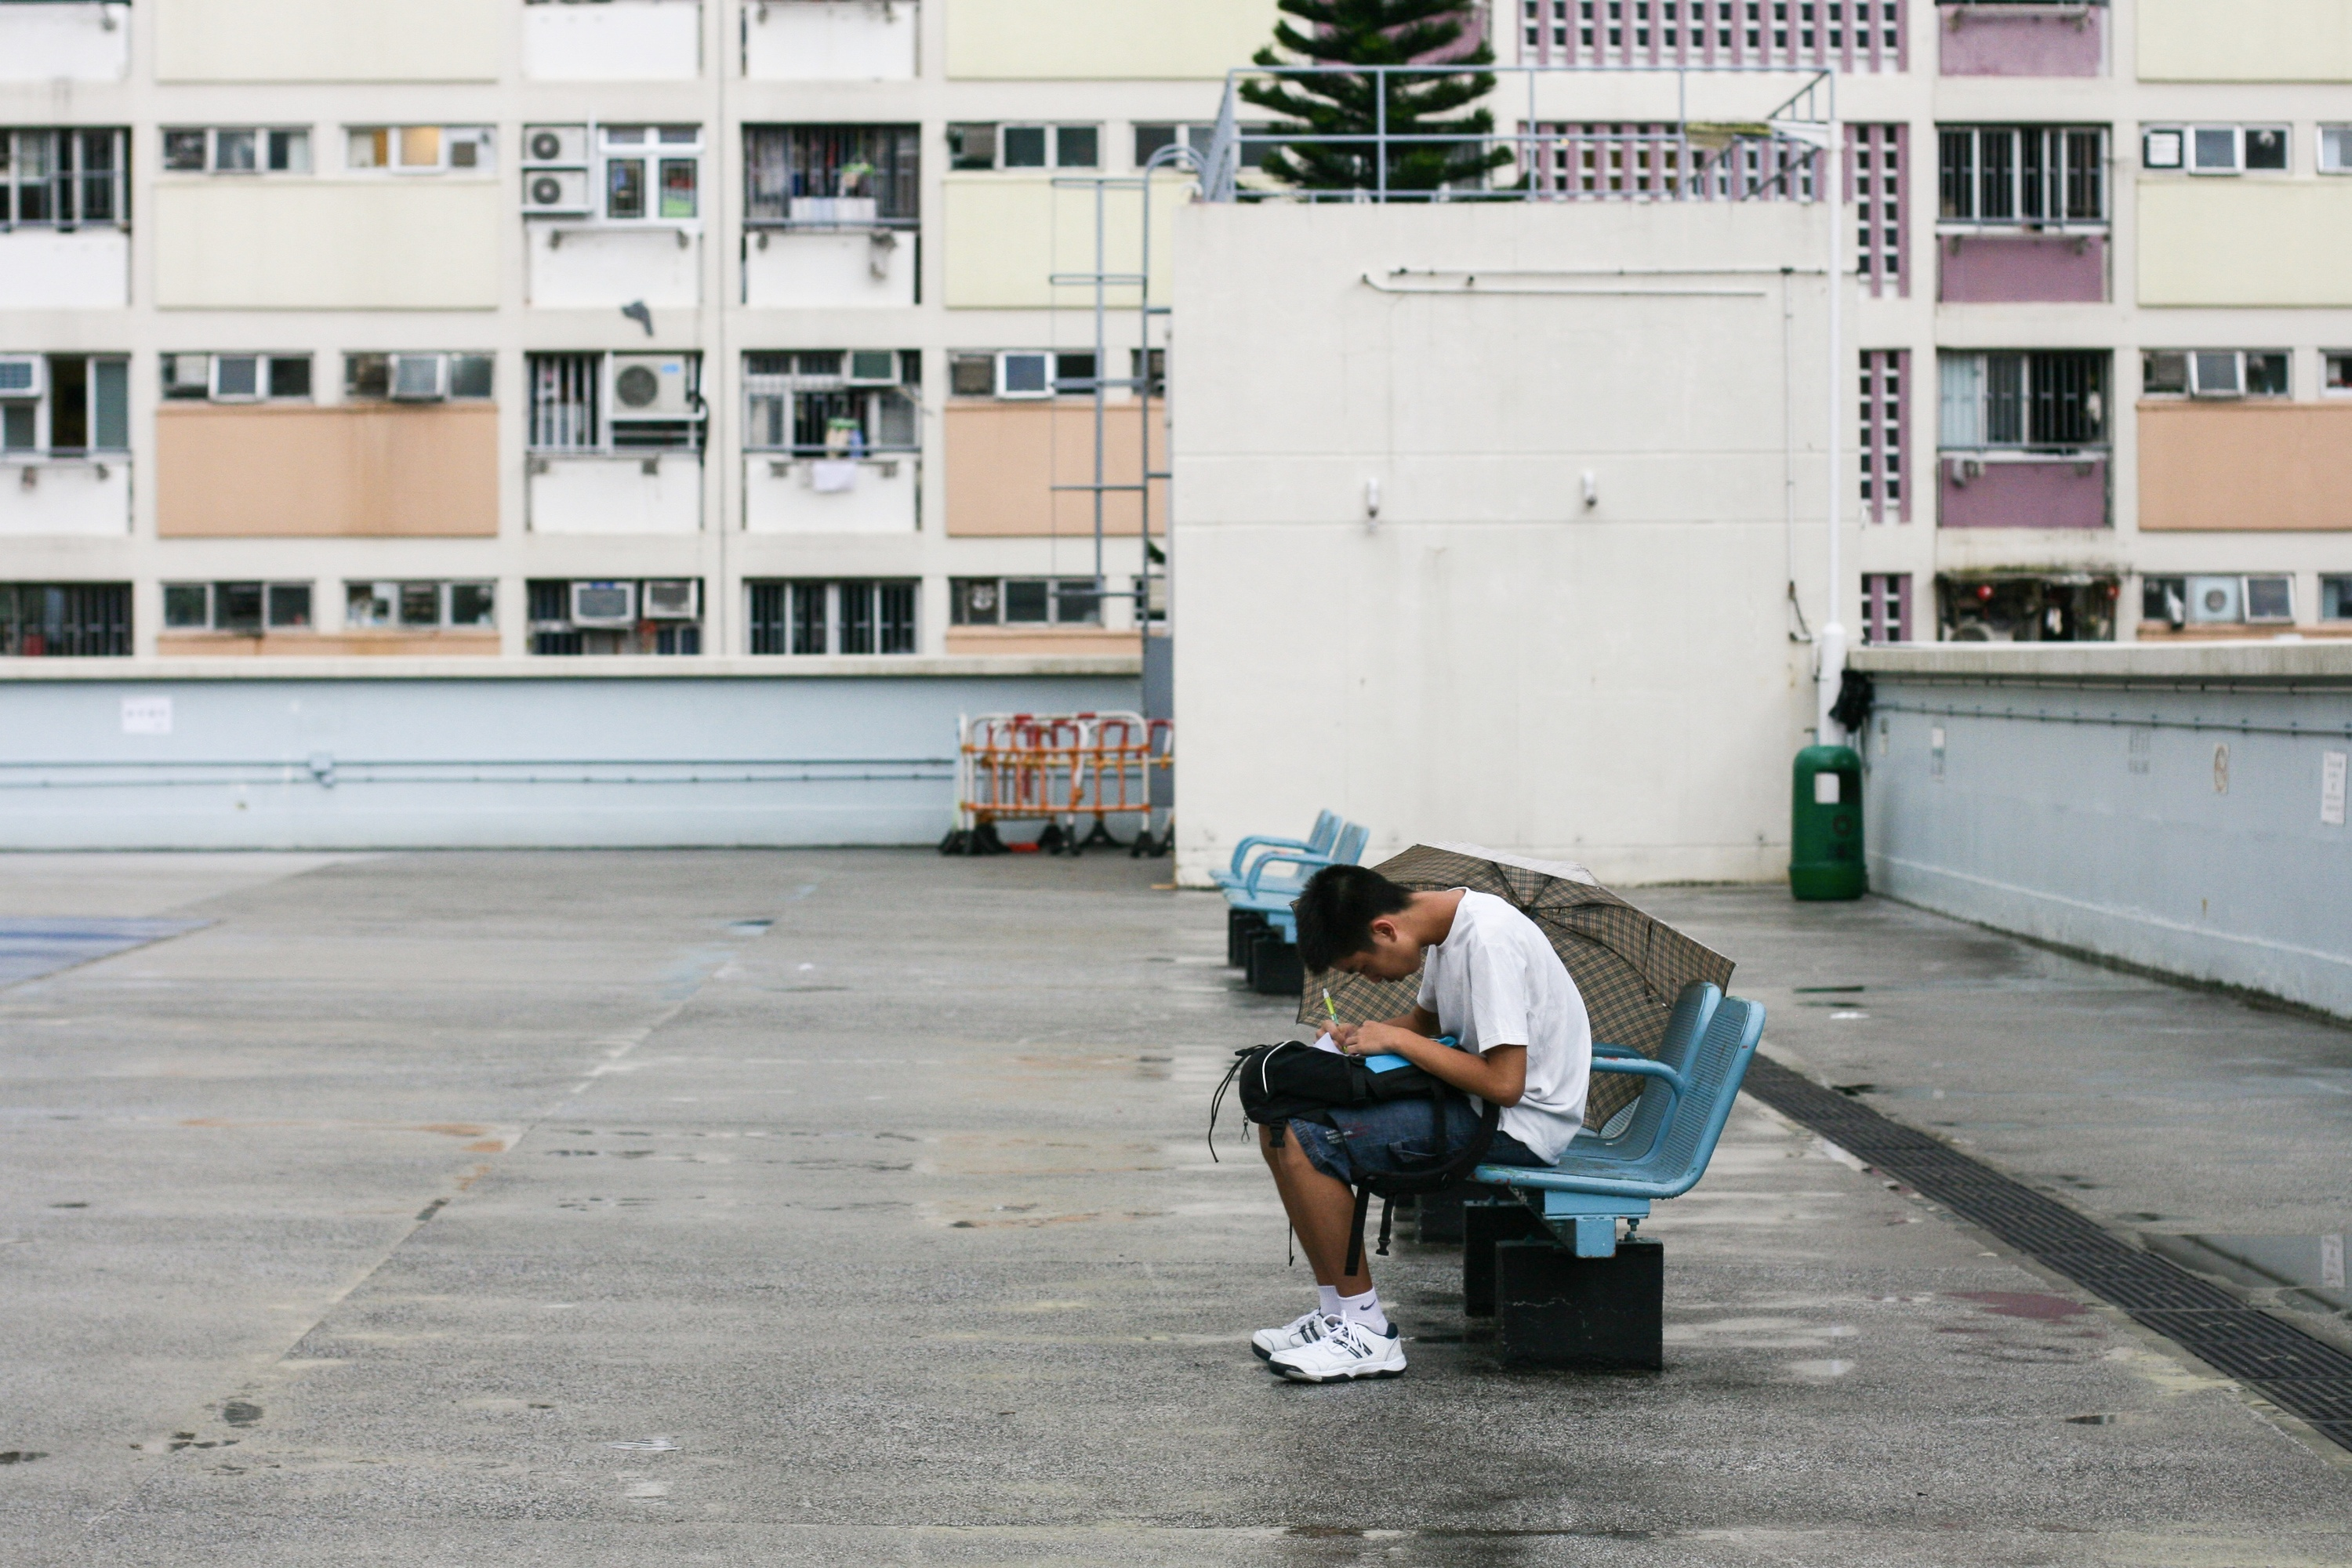 The state of mental health care in Hong Kong